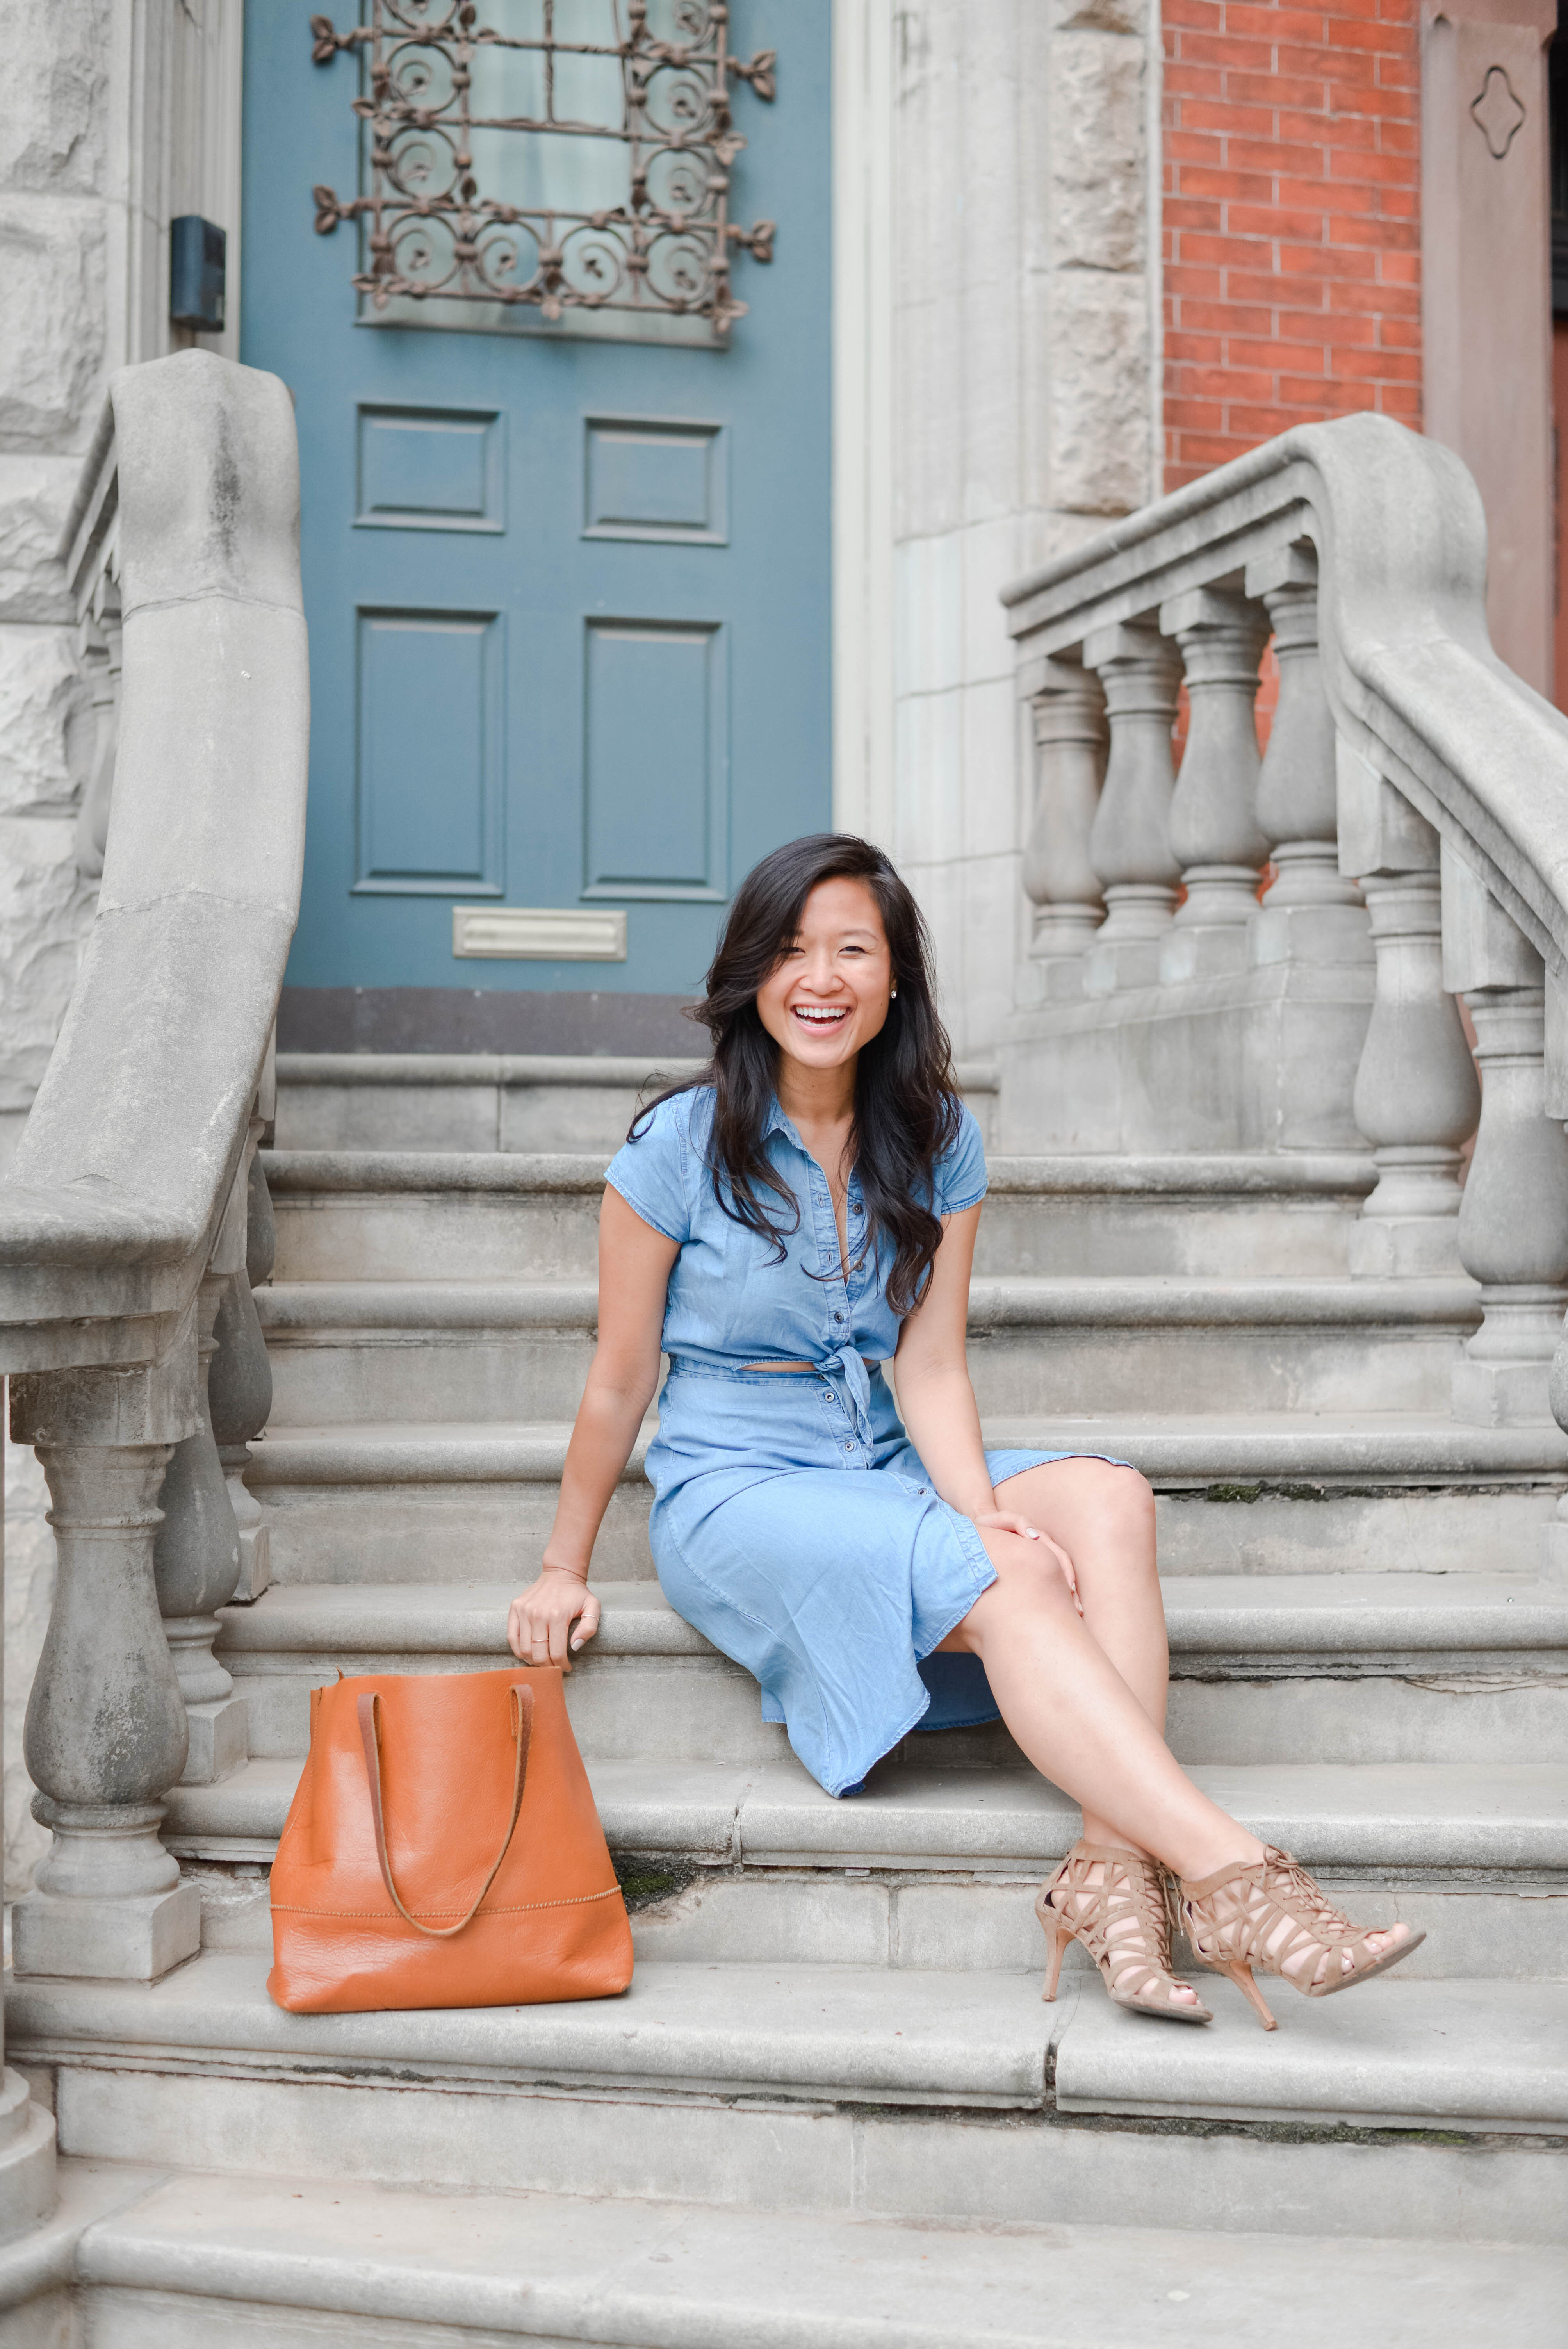 Philadelphia_Blogger_Fashion_Blog_Portrait_Photographer_Andrea_Krout_Photography_Style-1